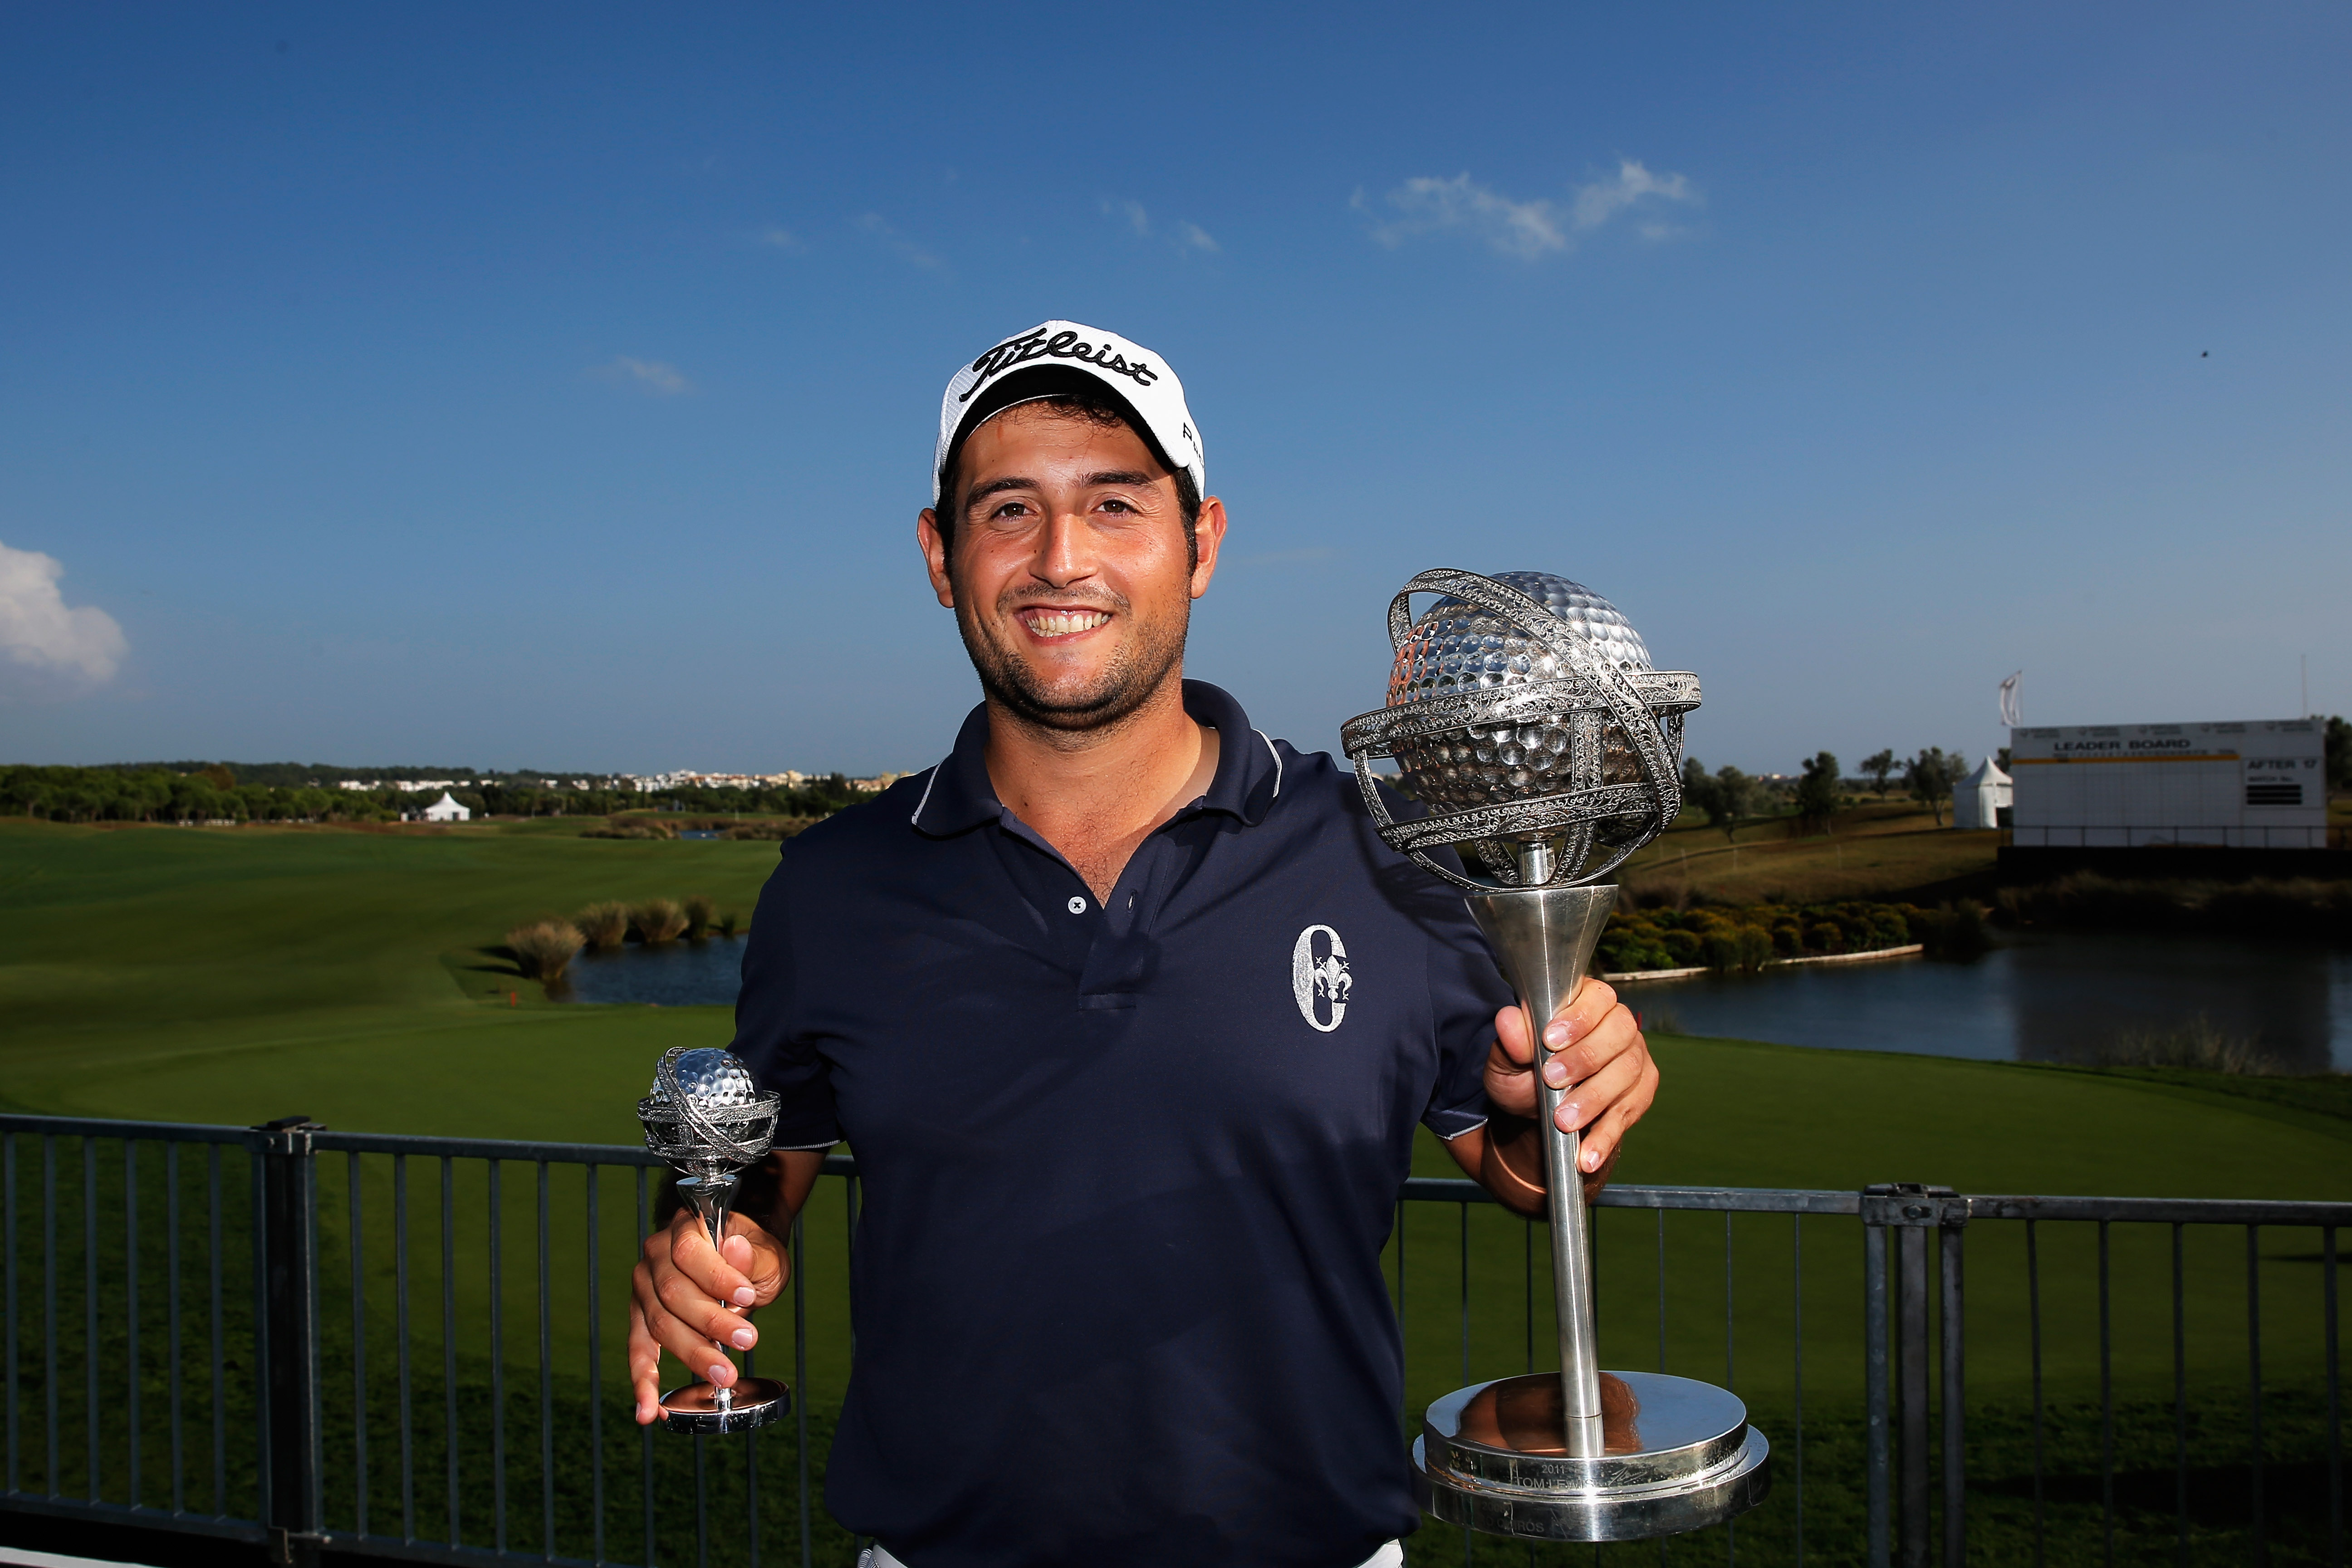 Alexander Levy and Bae Sang-moon into top 100 of golf rankings ...